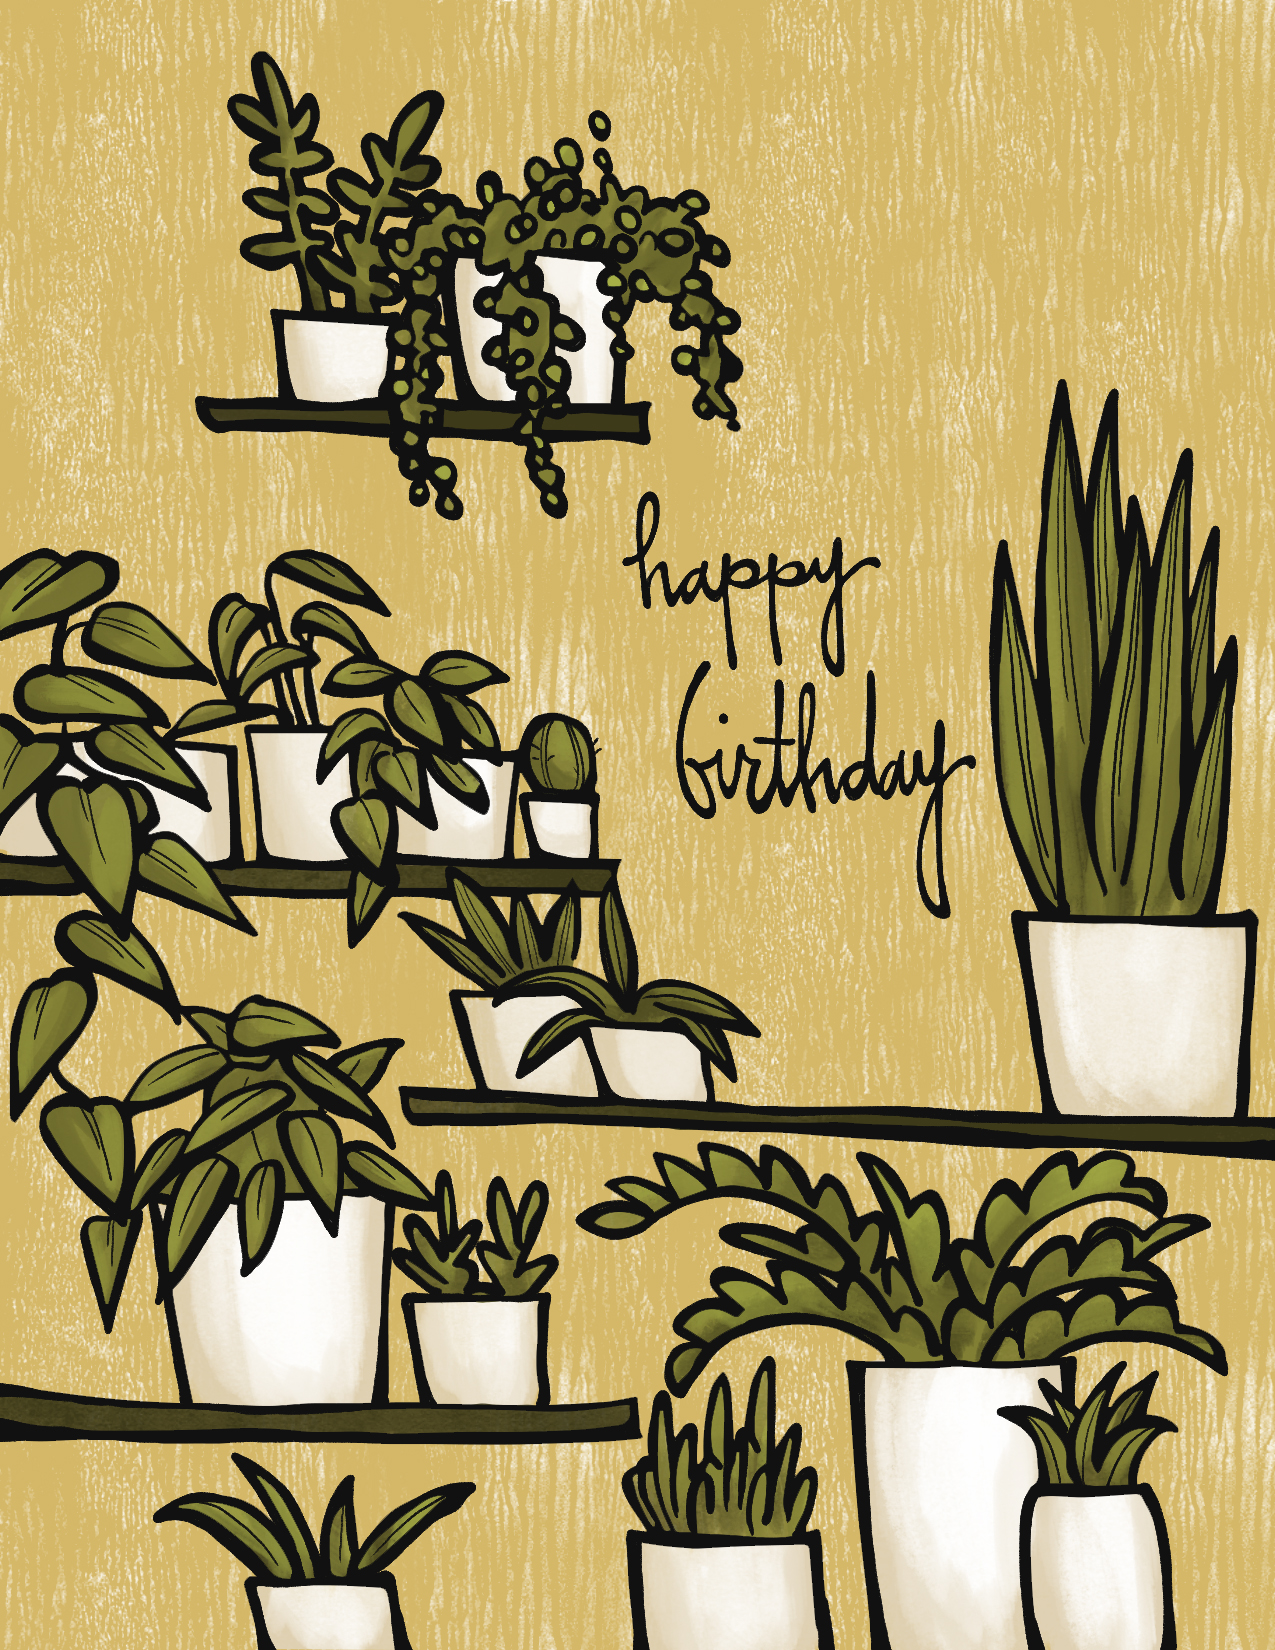 House Plant Birthday.jpg